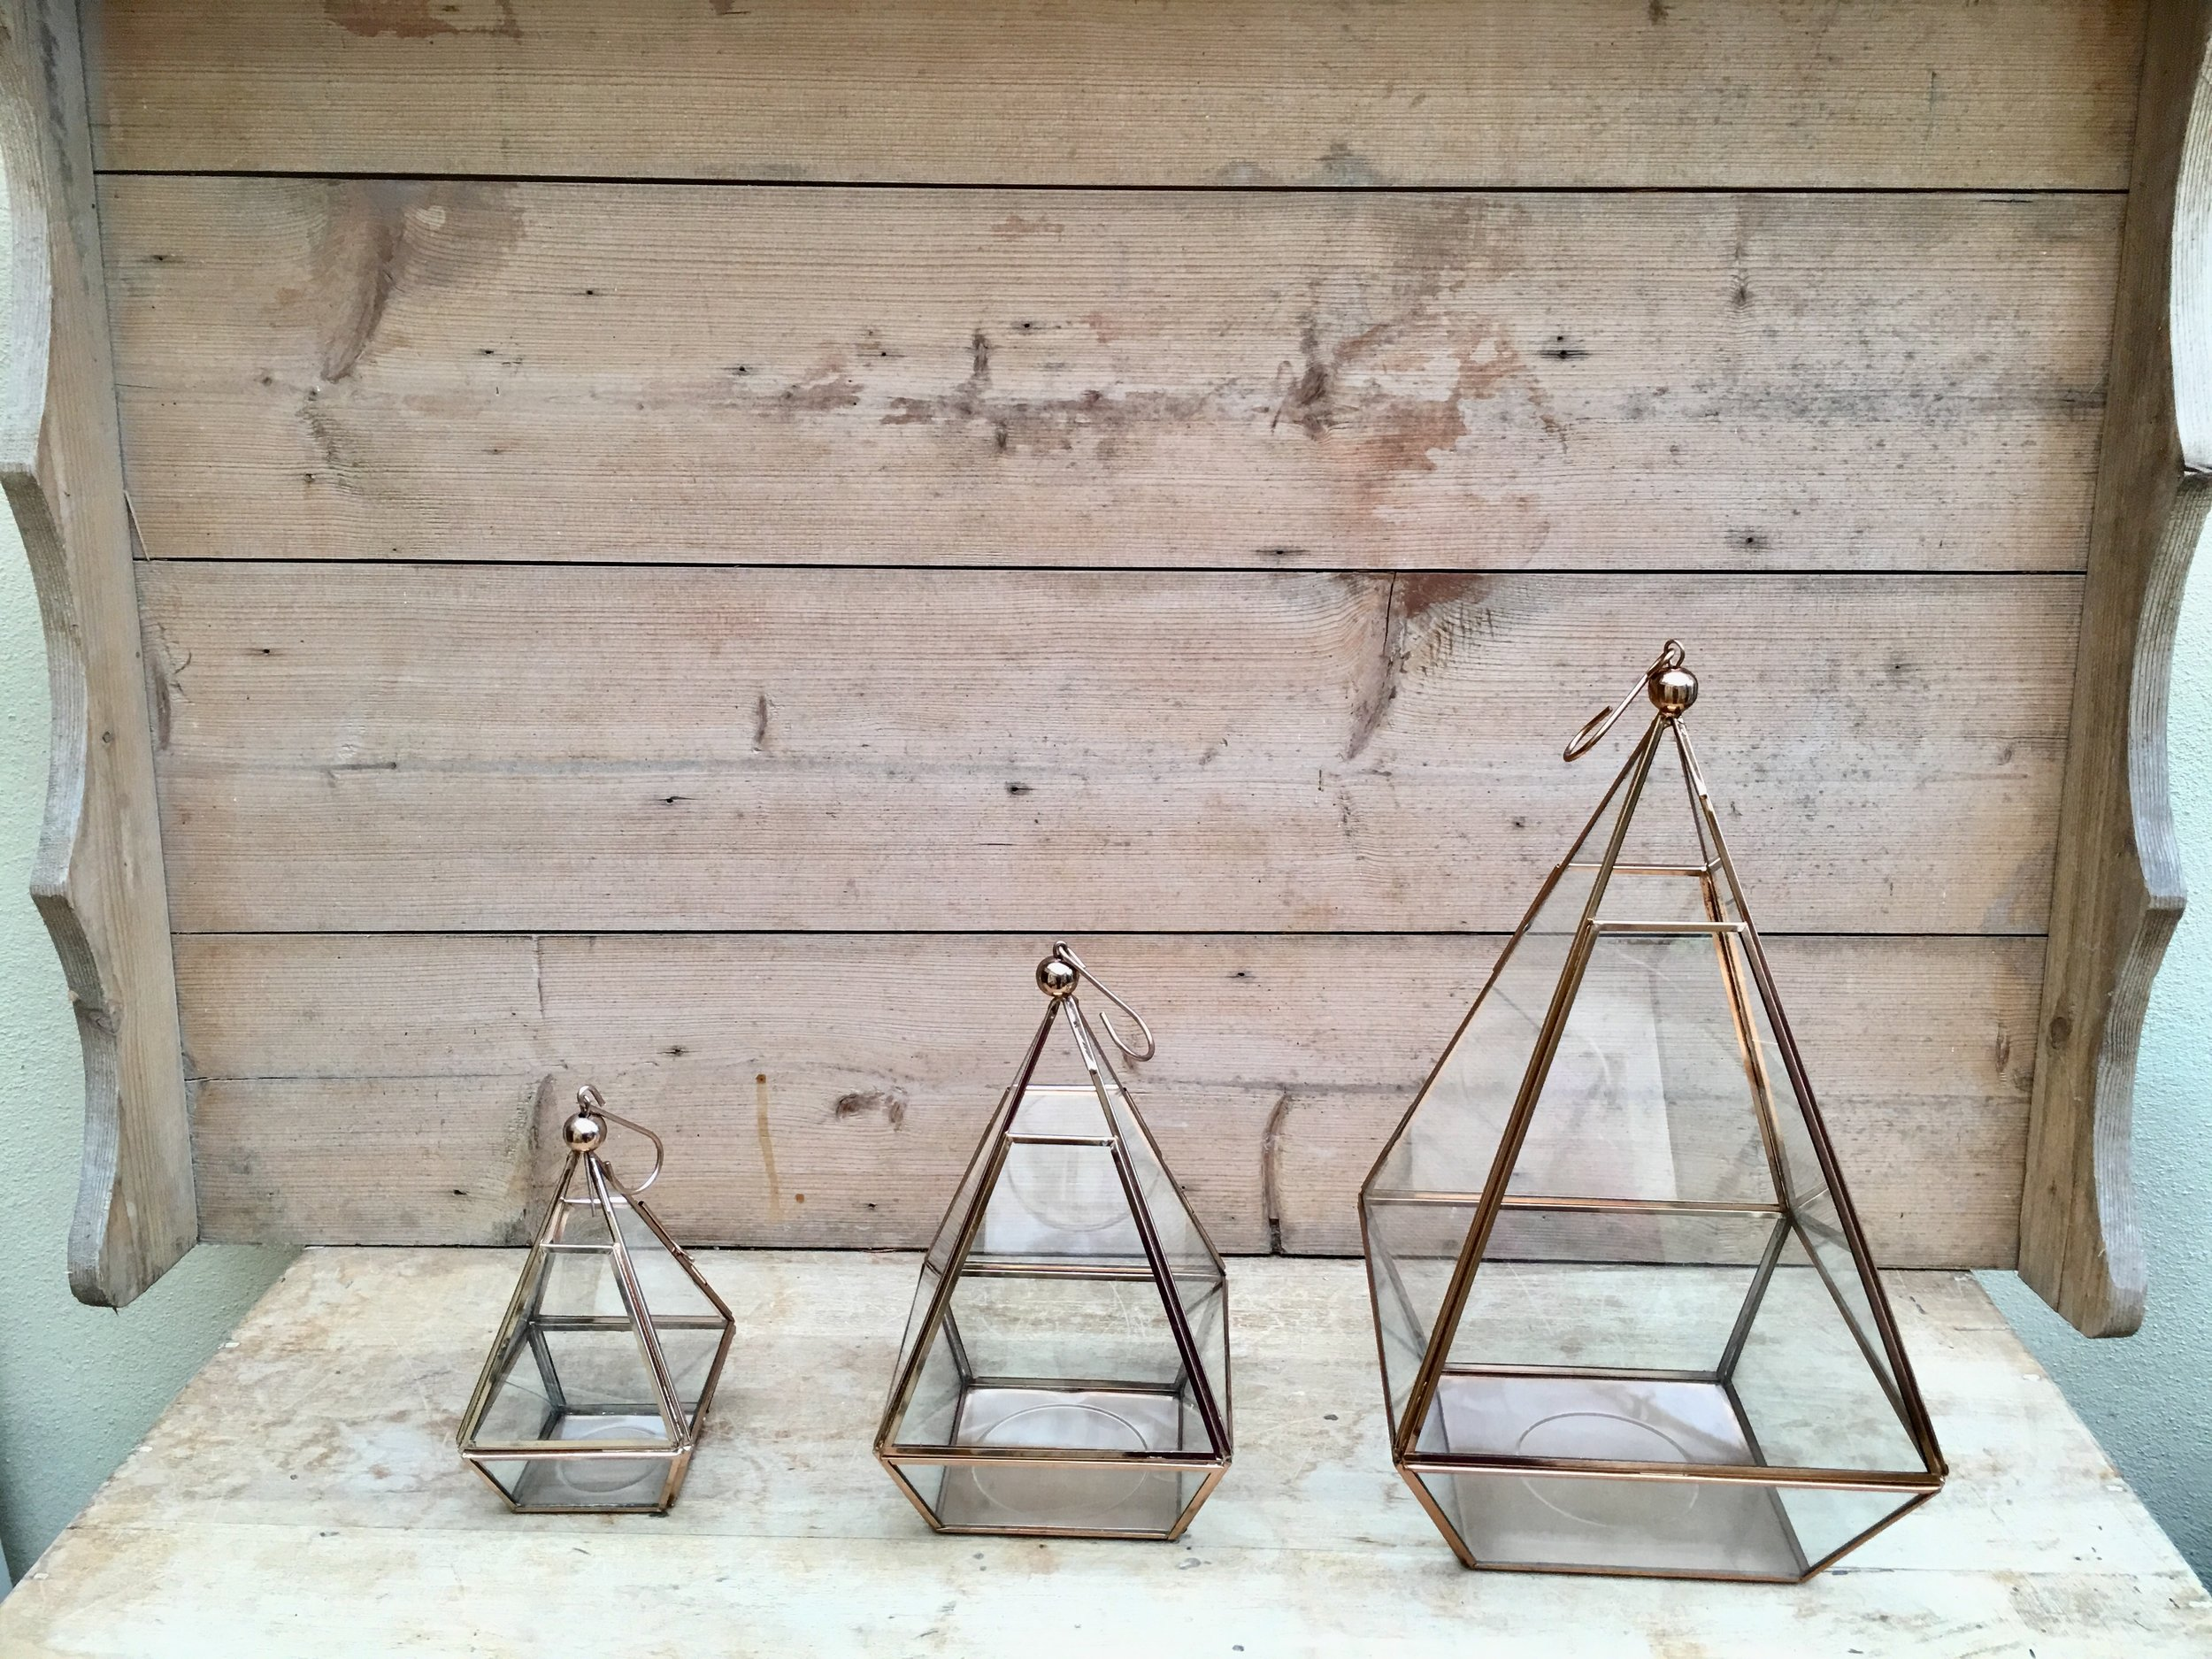 Terrariums £6 medium, small £3 and open lanterns £3